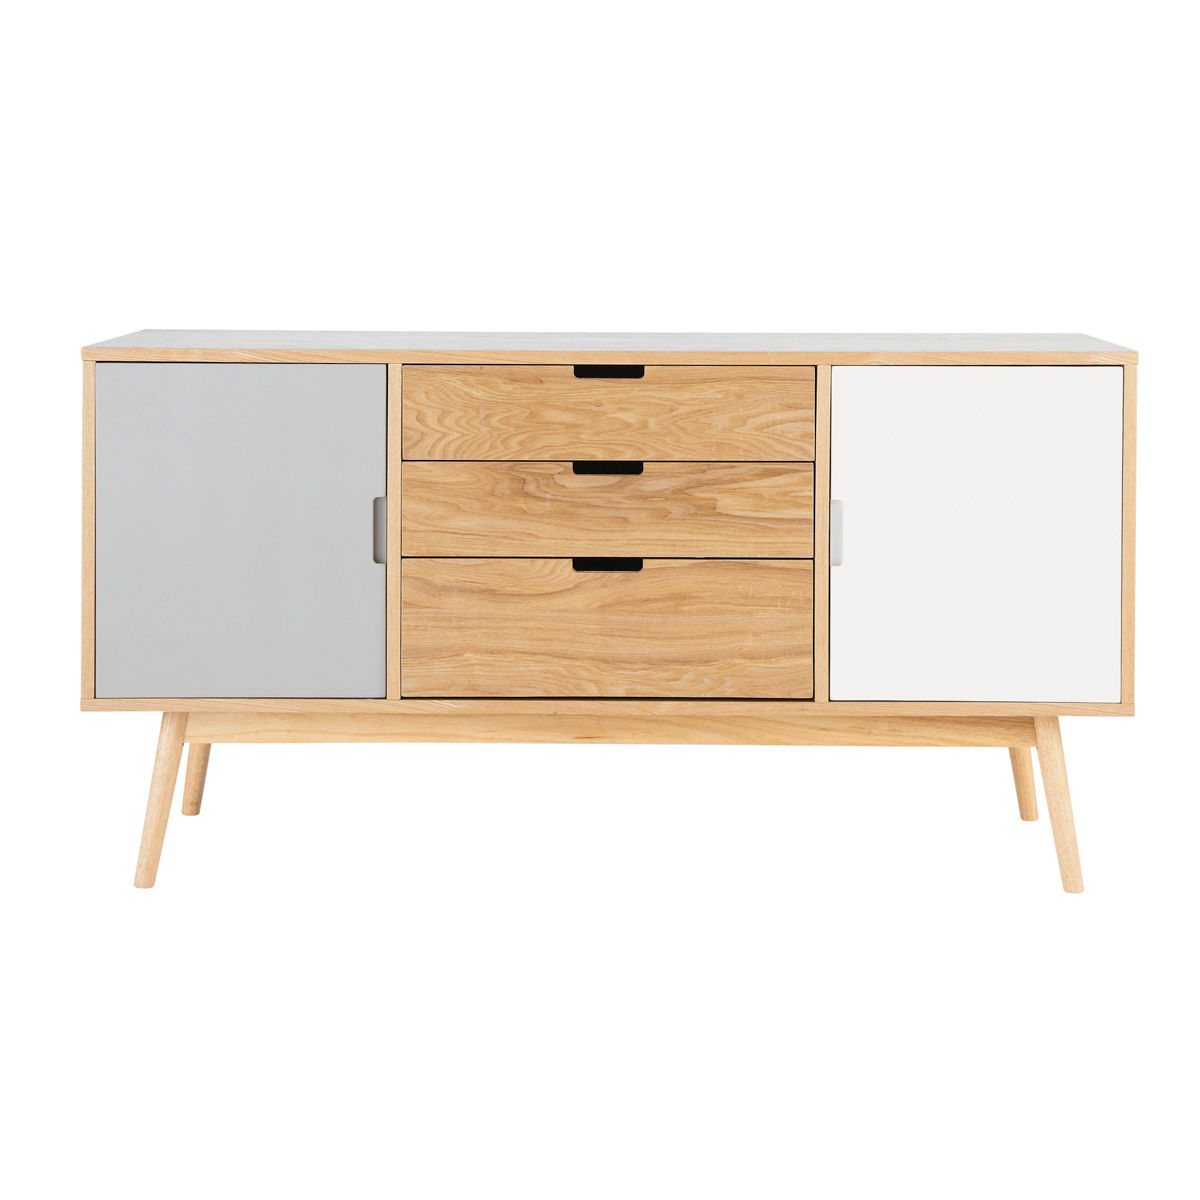 Maisons Du Monde In Widely Used Walnut Finish 2 Door/3 Drawer Sideboards (View 5 of 20)